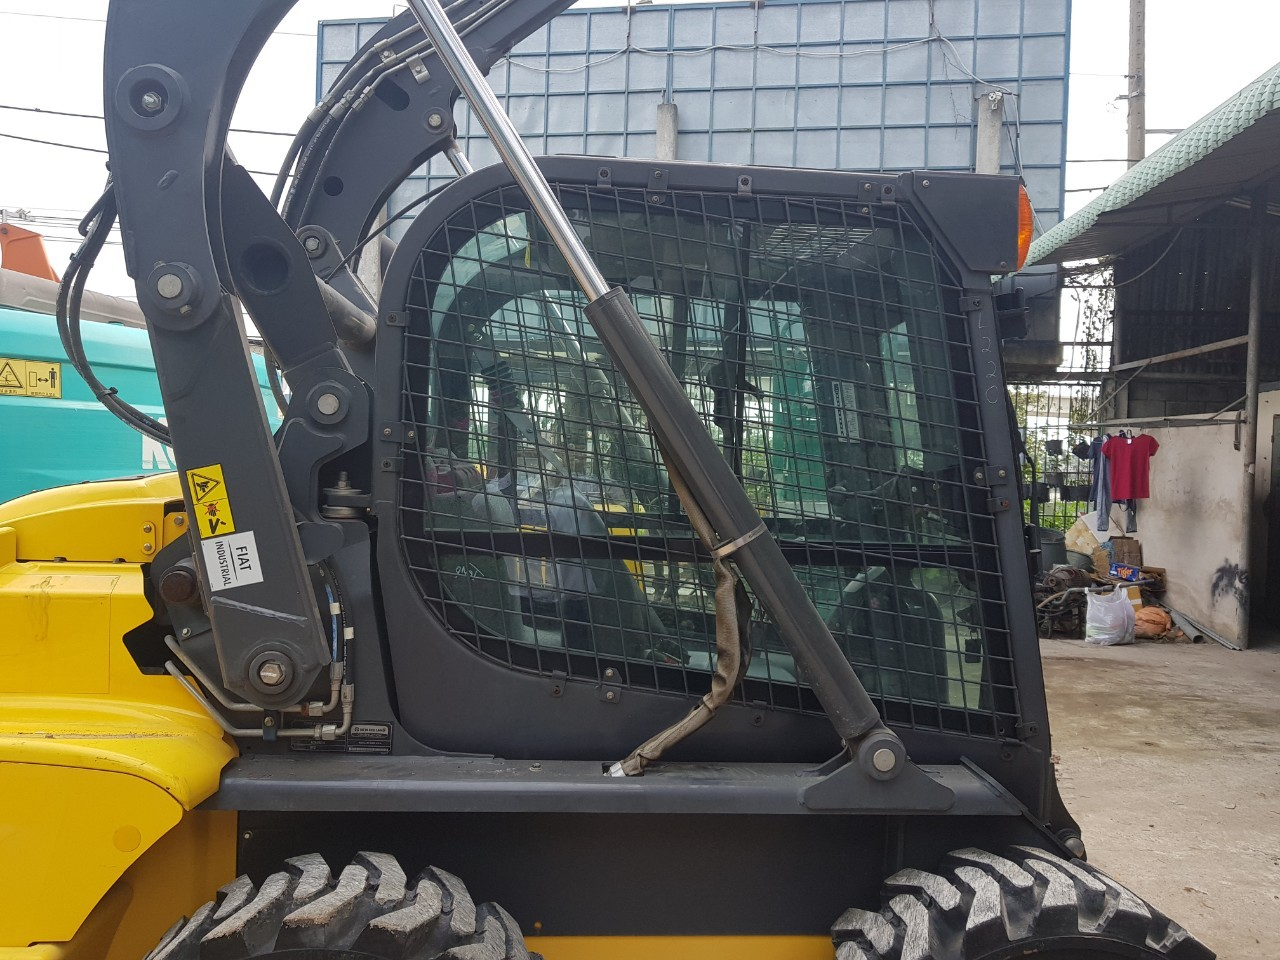 Skid Steer Loaders New Holland L220  U00bb Vi U1ec7t Nh U1eadt  Vijaco